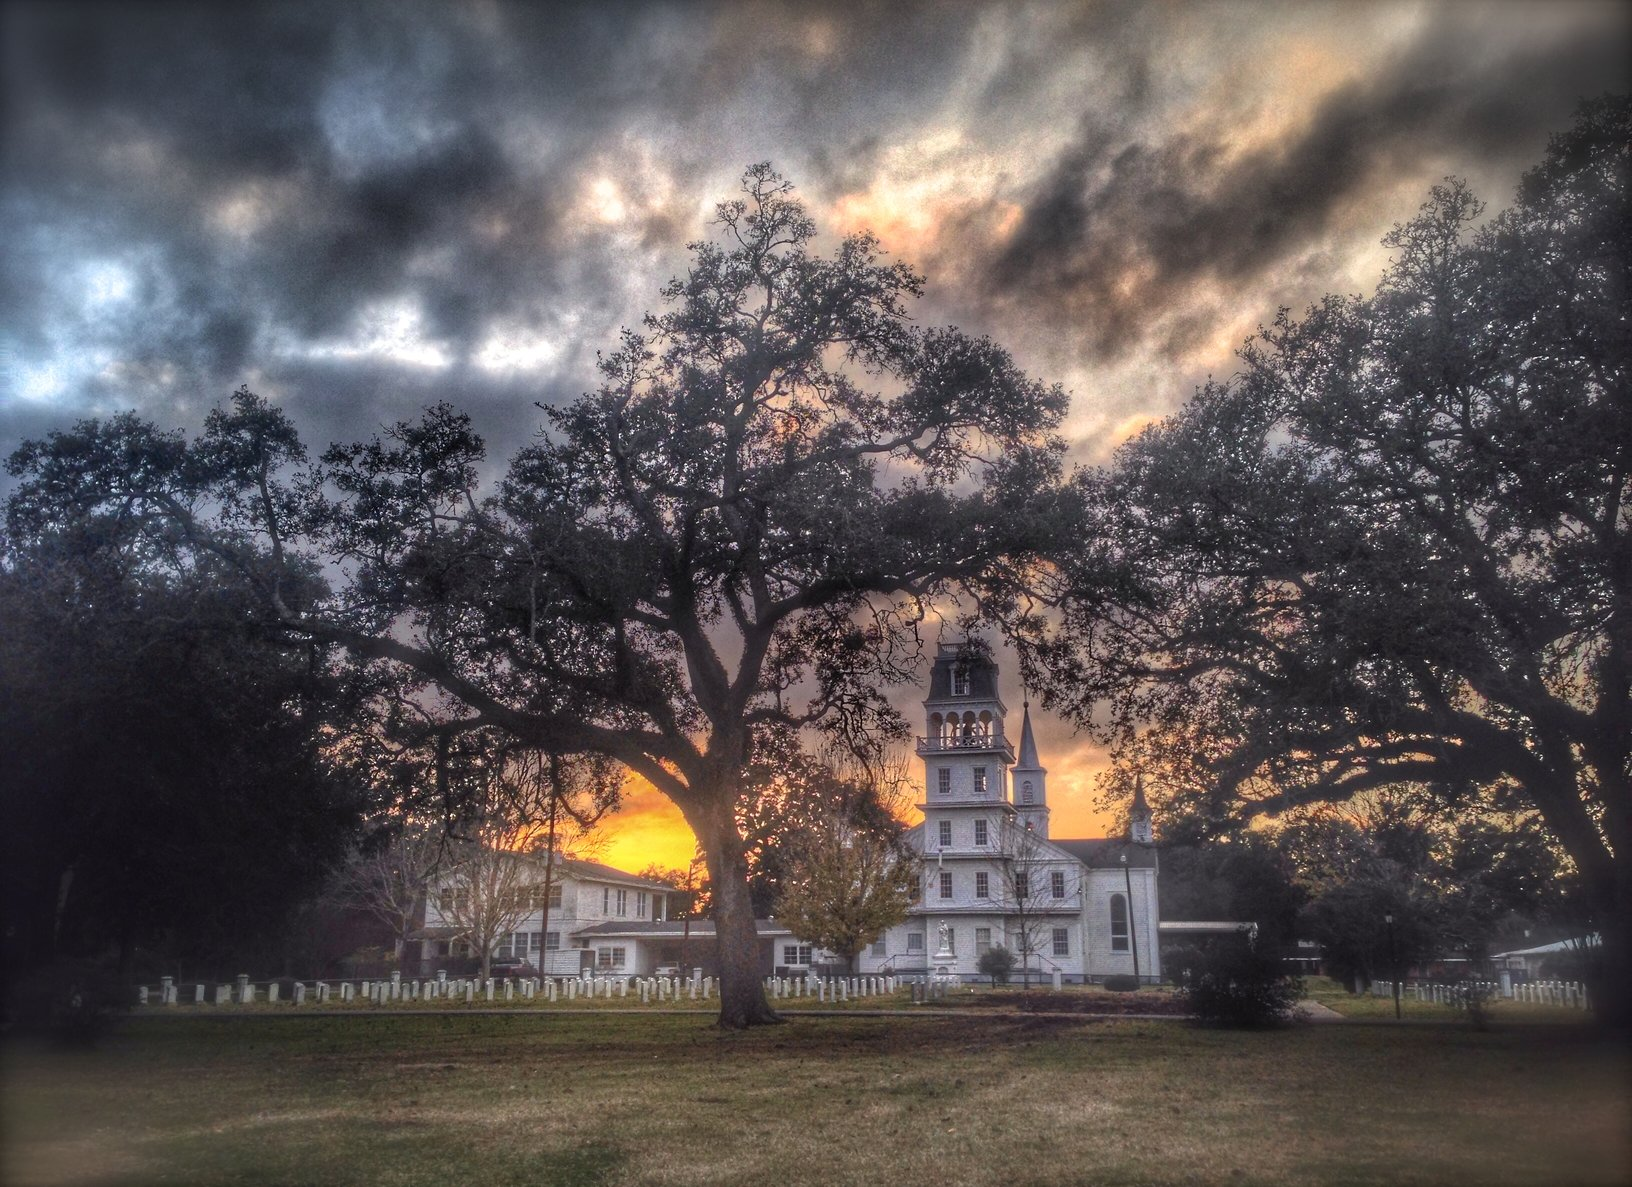 An Iphone photo of the historic St. Charles Church in Grand Coteau, LA